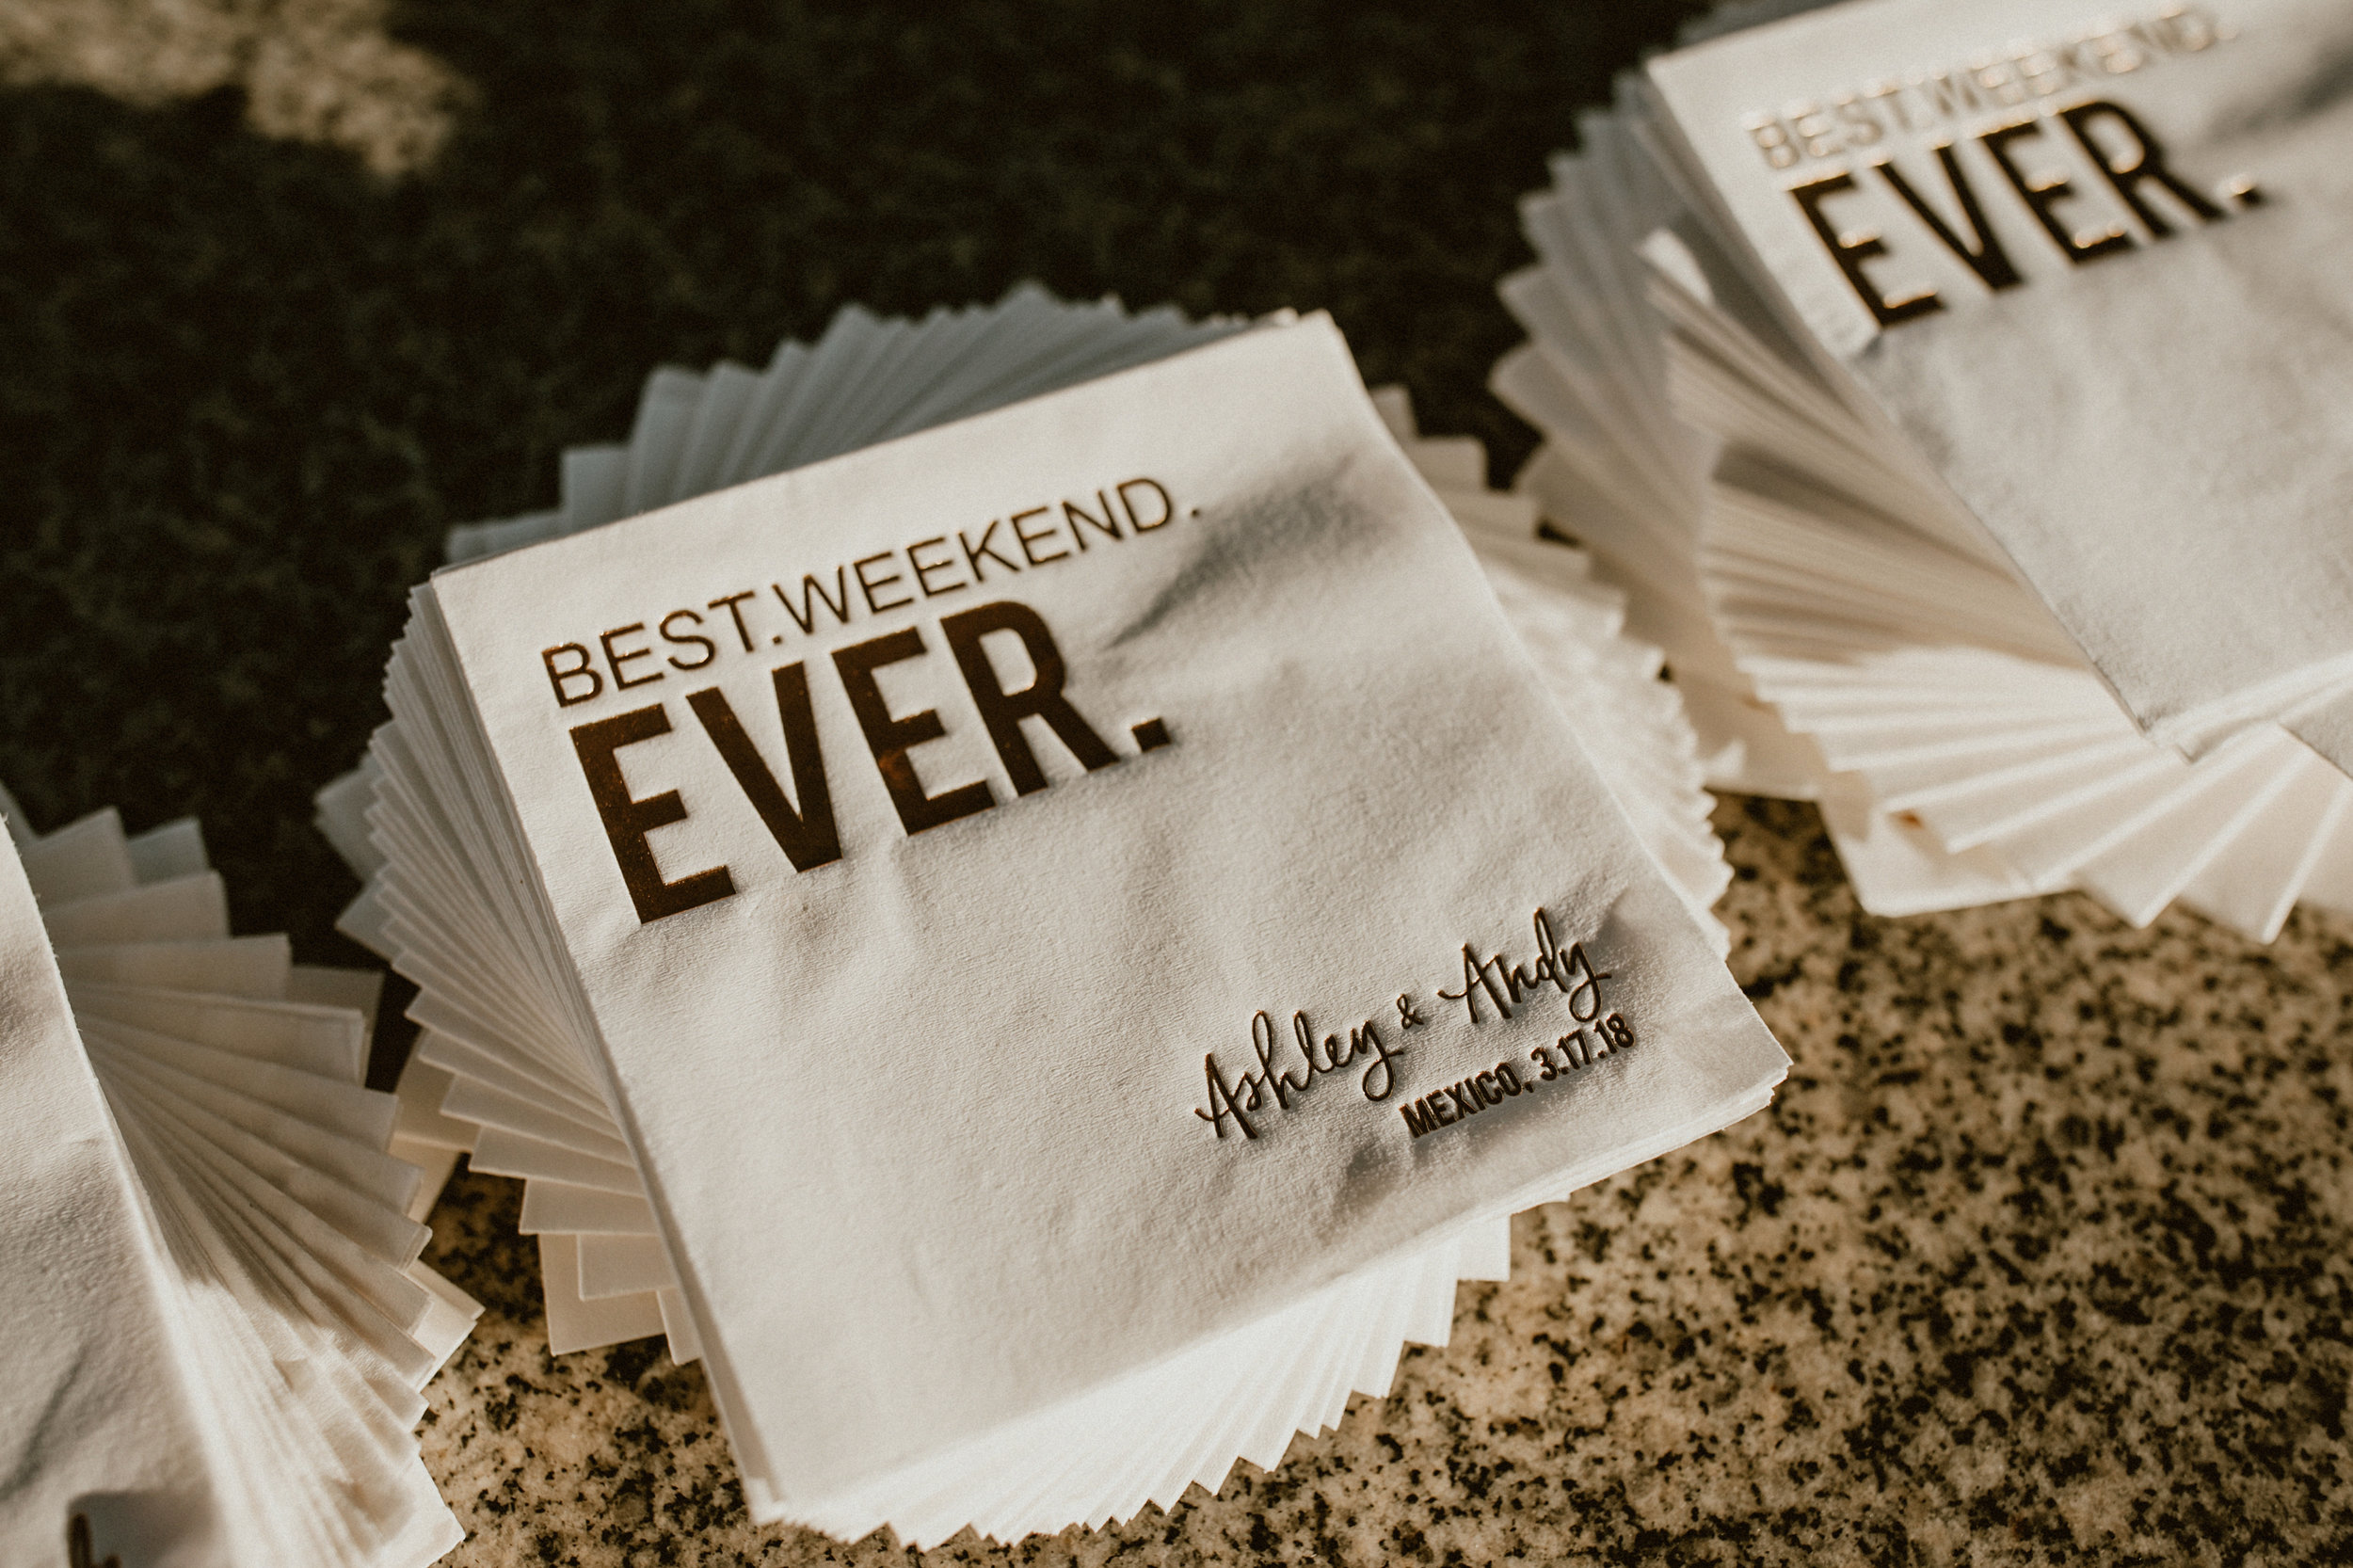 Custom wedding weekend napkins by For Your Party.